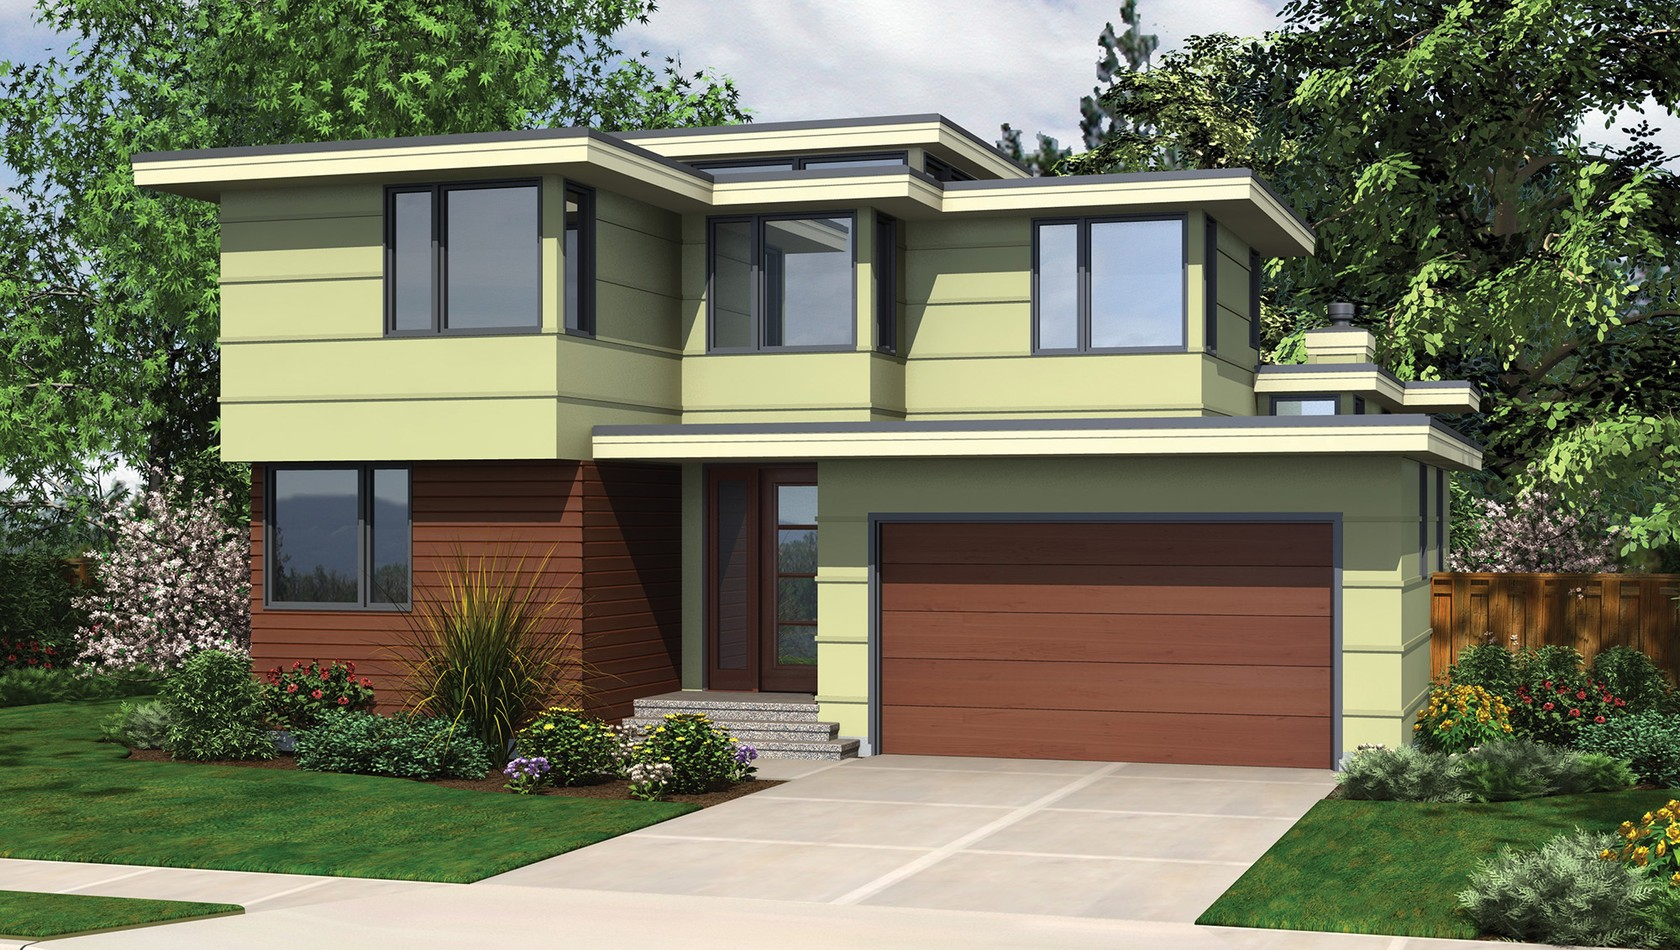 Main image for house plan 22180: The Eadin